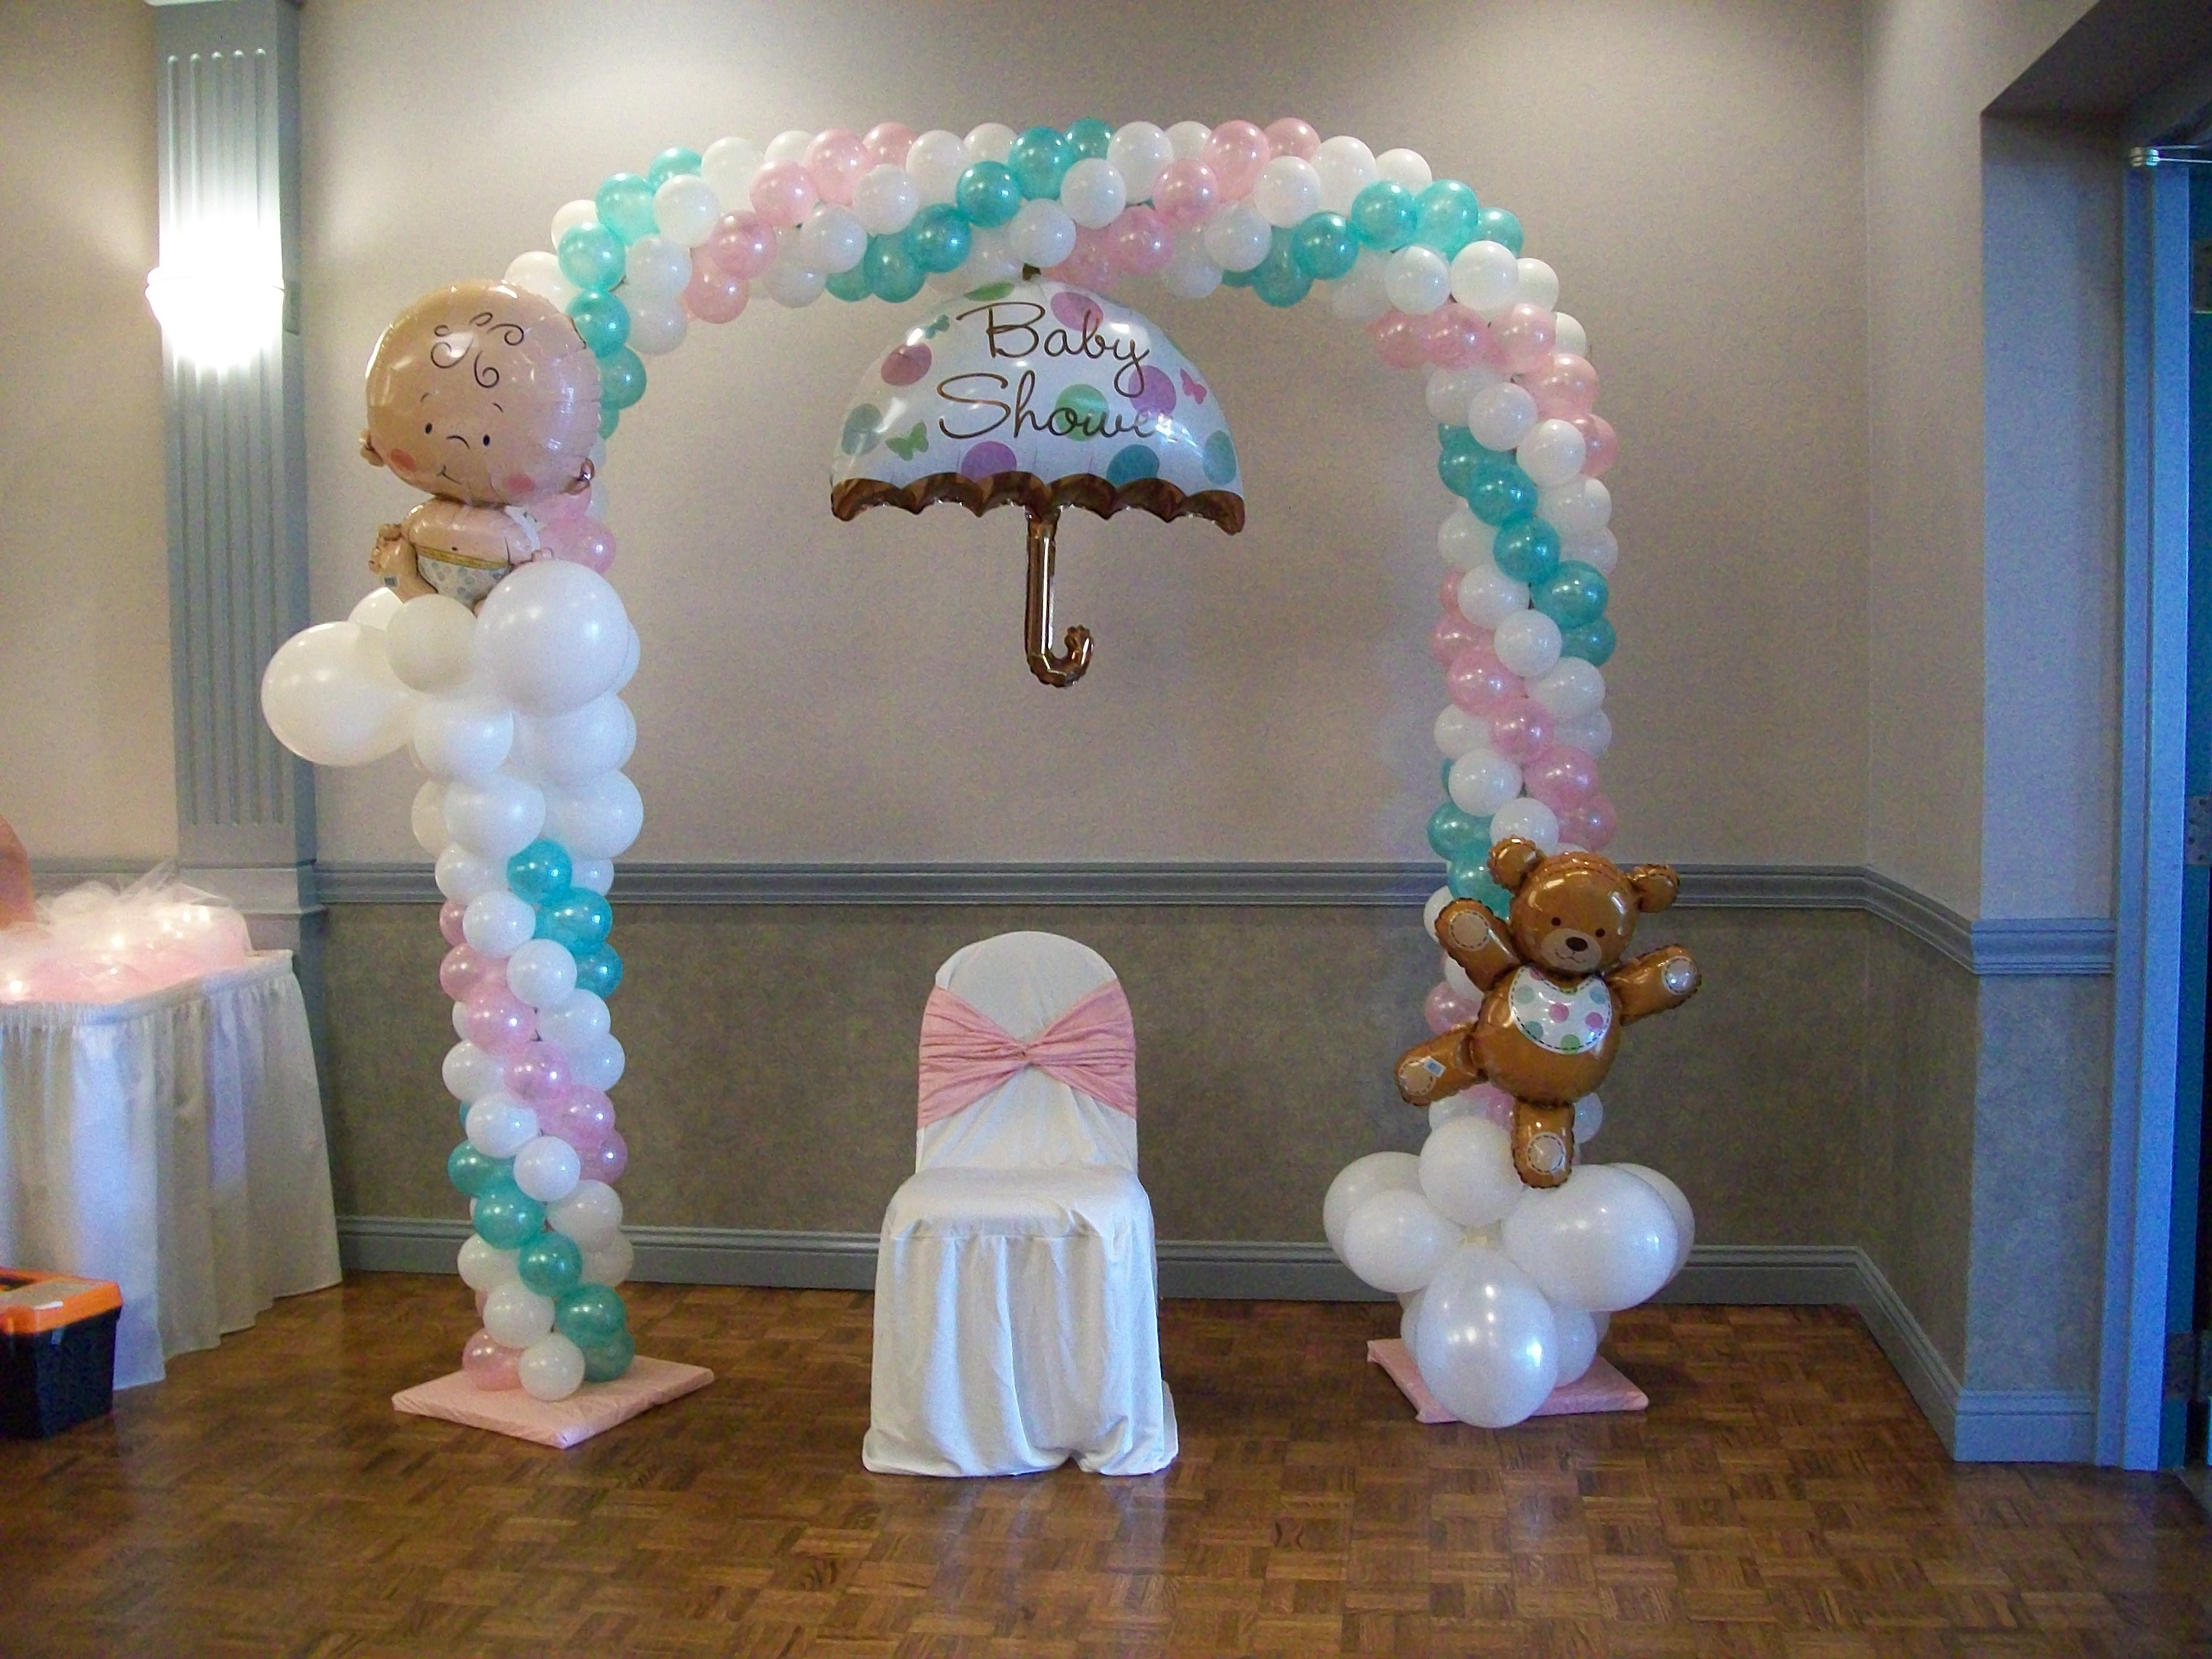 10 Awesome Baby Shower Balloon Decorations Ideas balloon arch for a baby shower heavenly creations events 2020